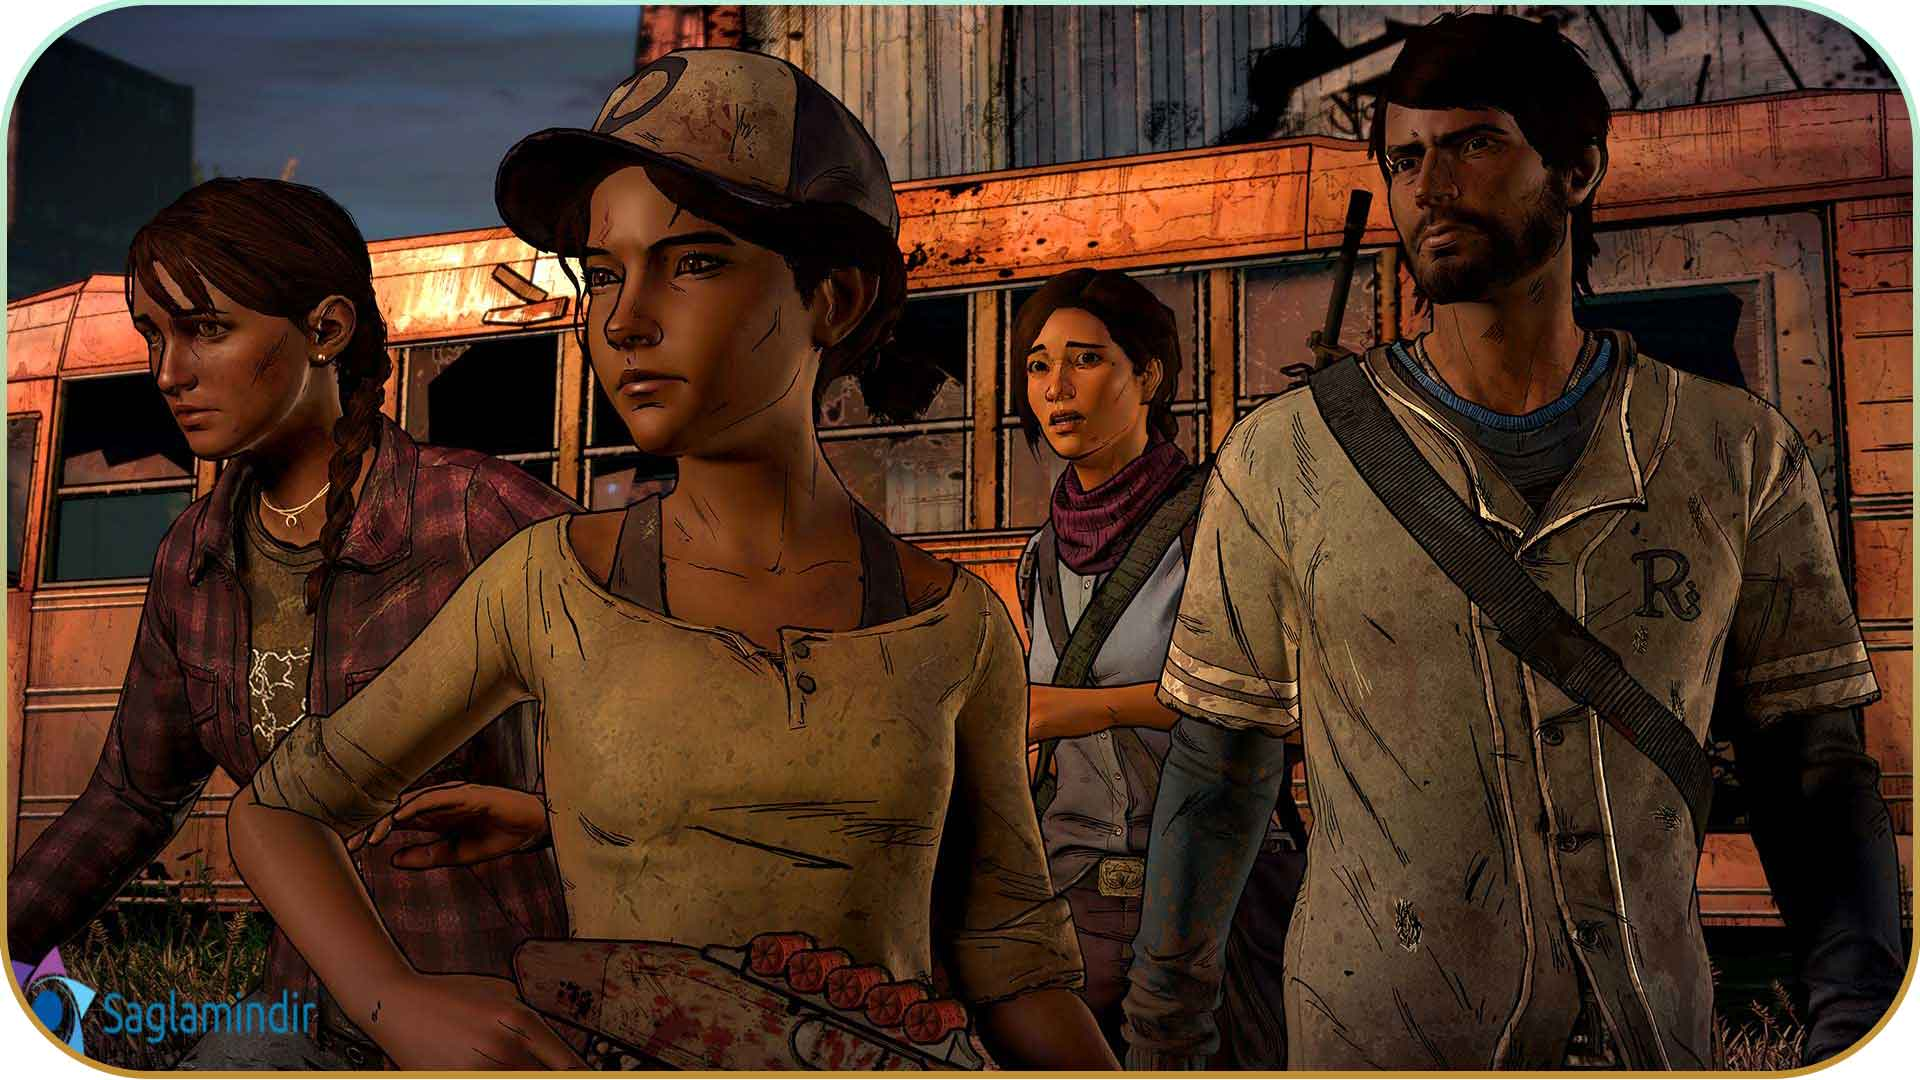 The Walking Dead A New Frontier saglamindir